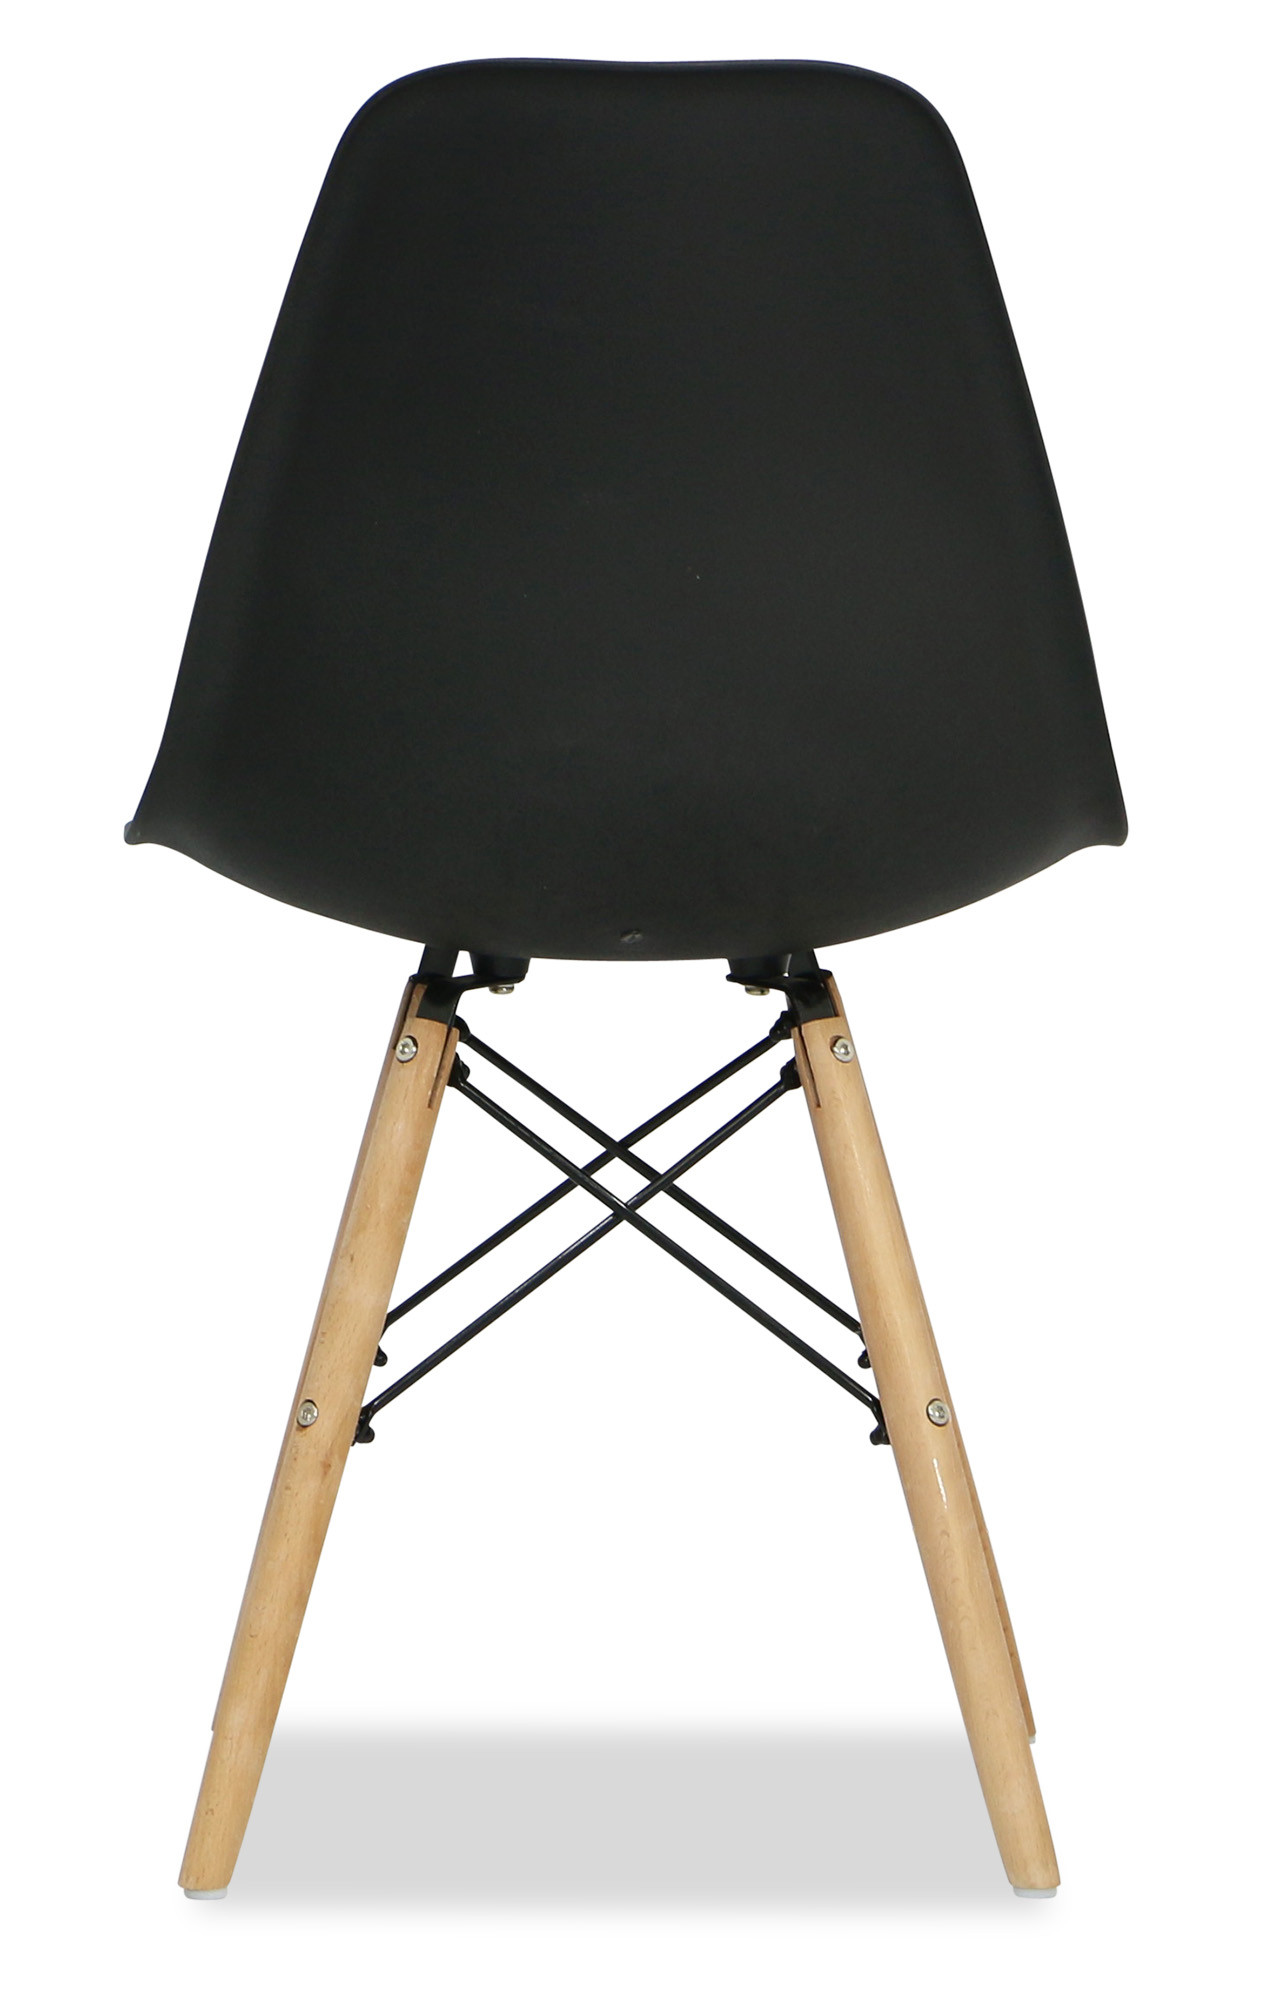 Eames black replica designer chair dining chairs for Imitation designer chairs